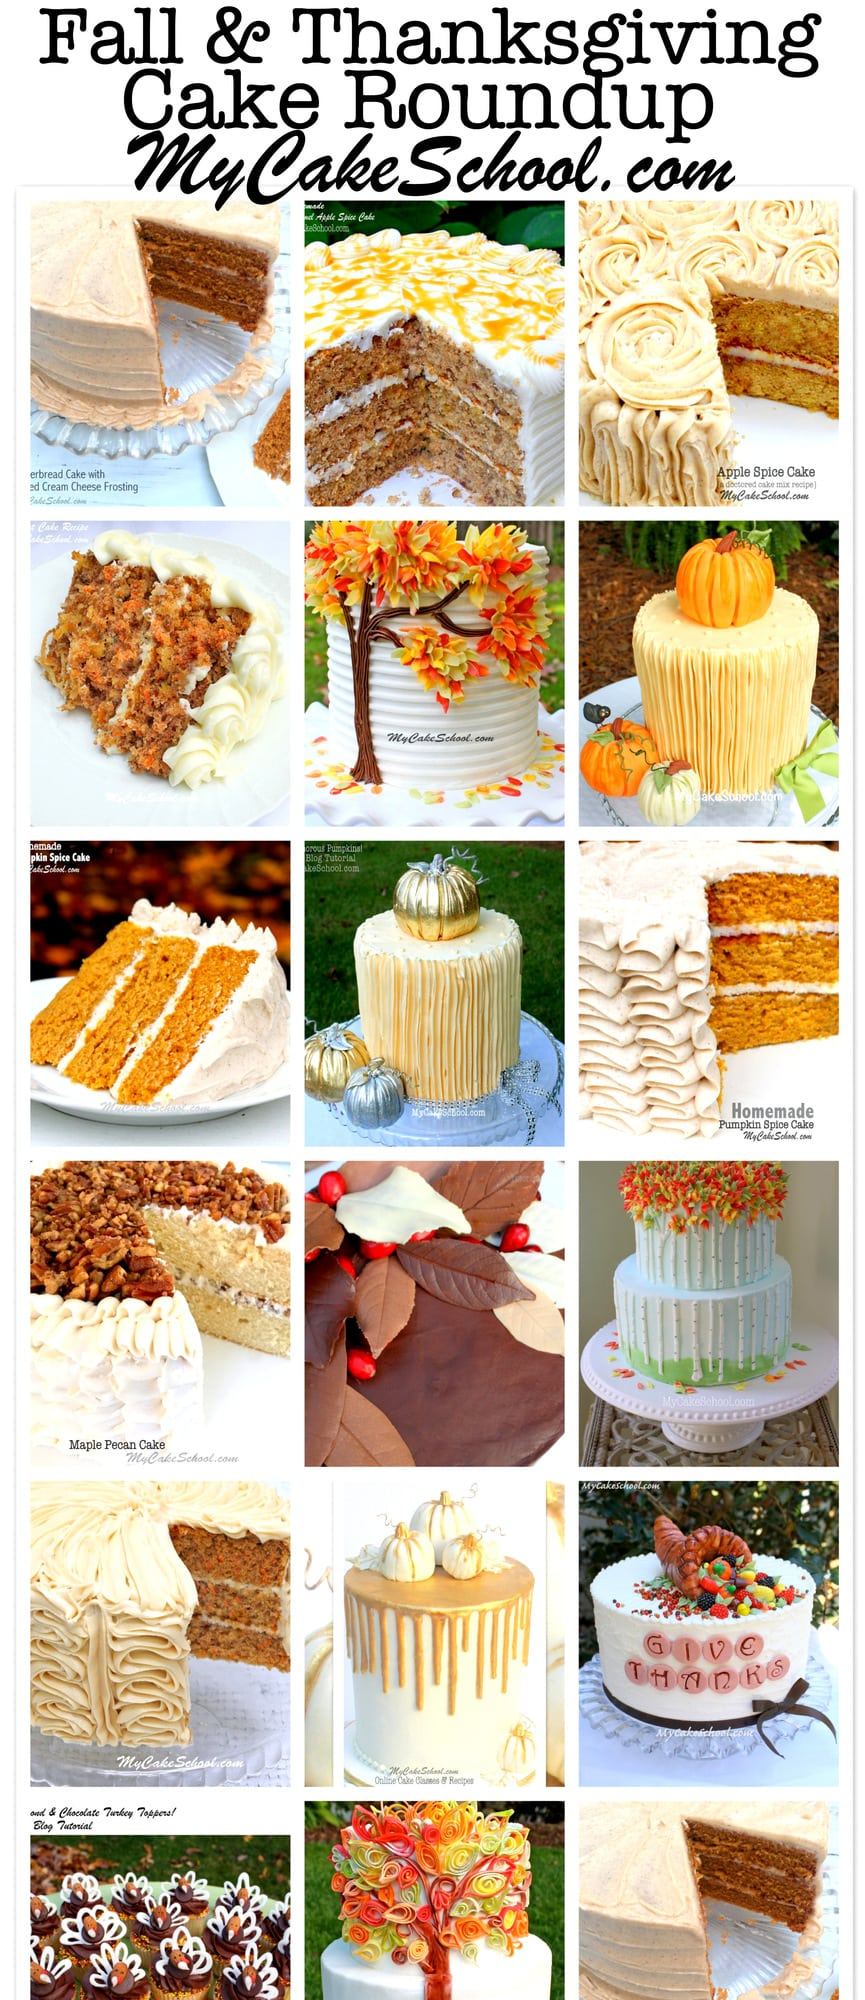 Roundup of the BEST Fall and Thanksgiving Cakes, Tutorials, and Ideas as featured on MyCakeSchool.com!